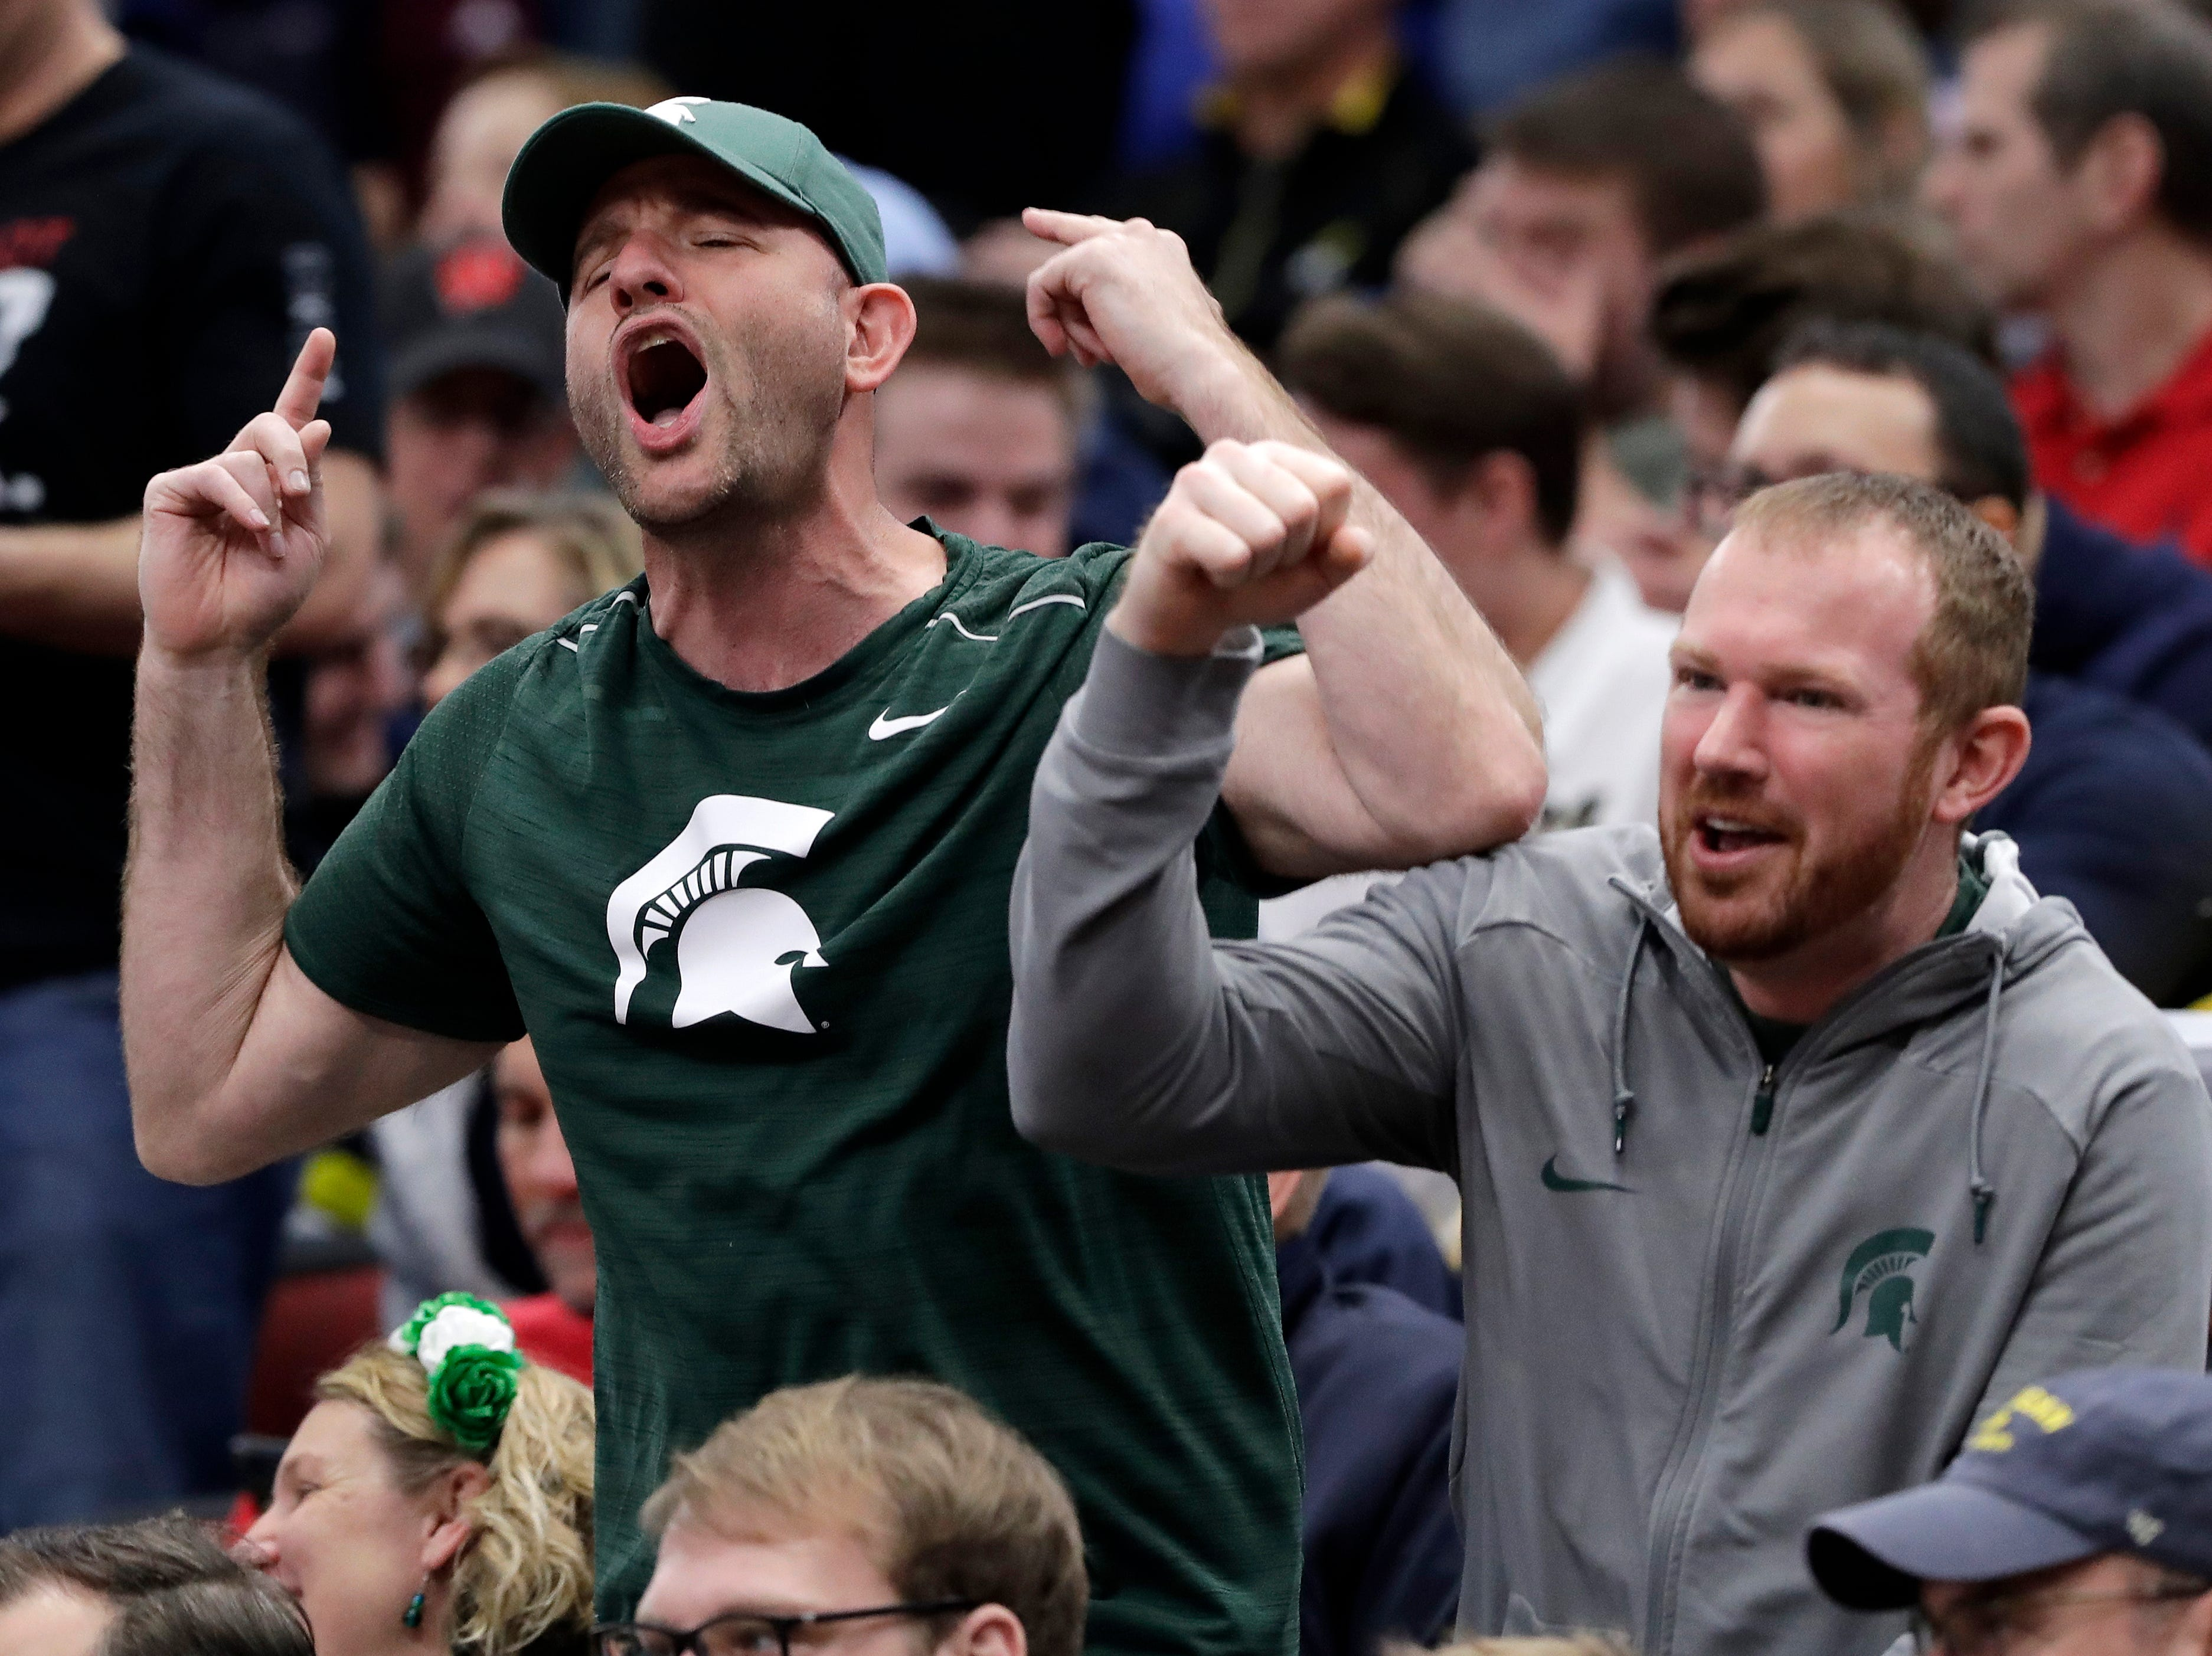 Michigan State fans cheer during the second half of an NCAA college basketball game between Michigan State and Wisconsin in the semifinals of the Big Ten Conference tournament, Saturday, March 16, 2019, in Chicago. Michigan State won 67-55.